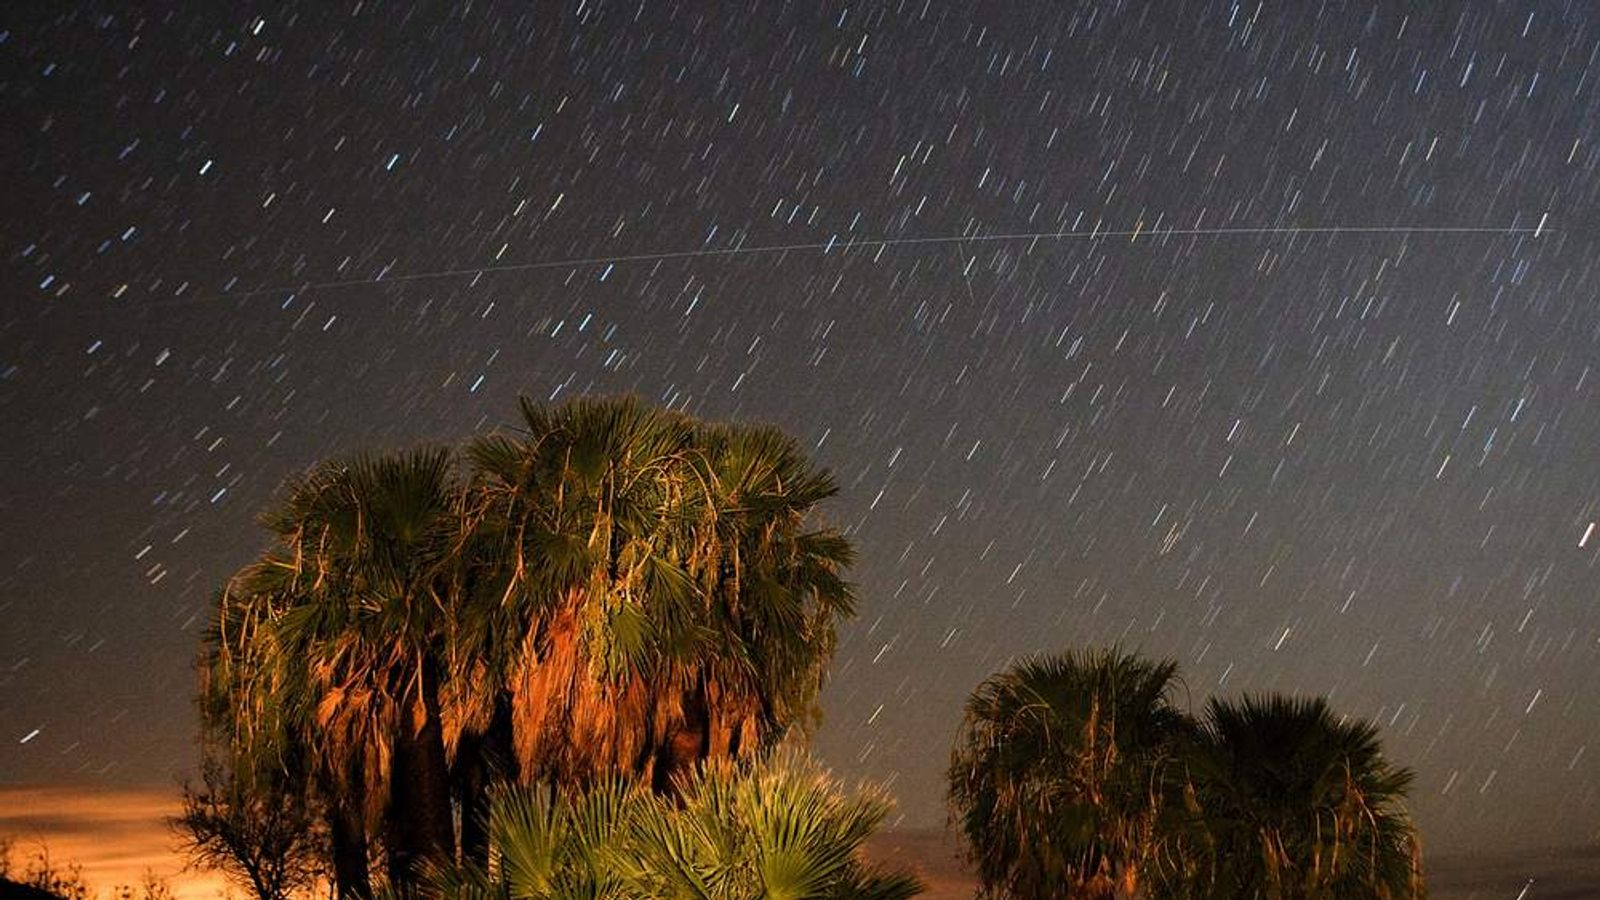 The Annual Perseid Meteor Shower Offers Celestial Show In Night Sky